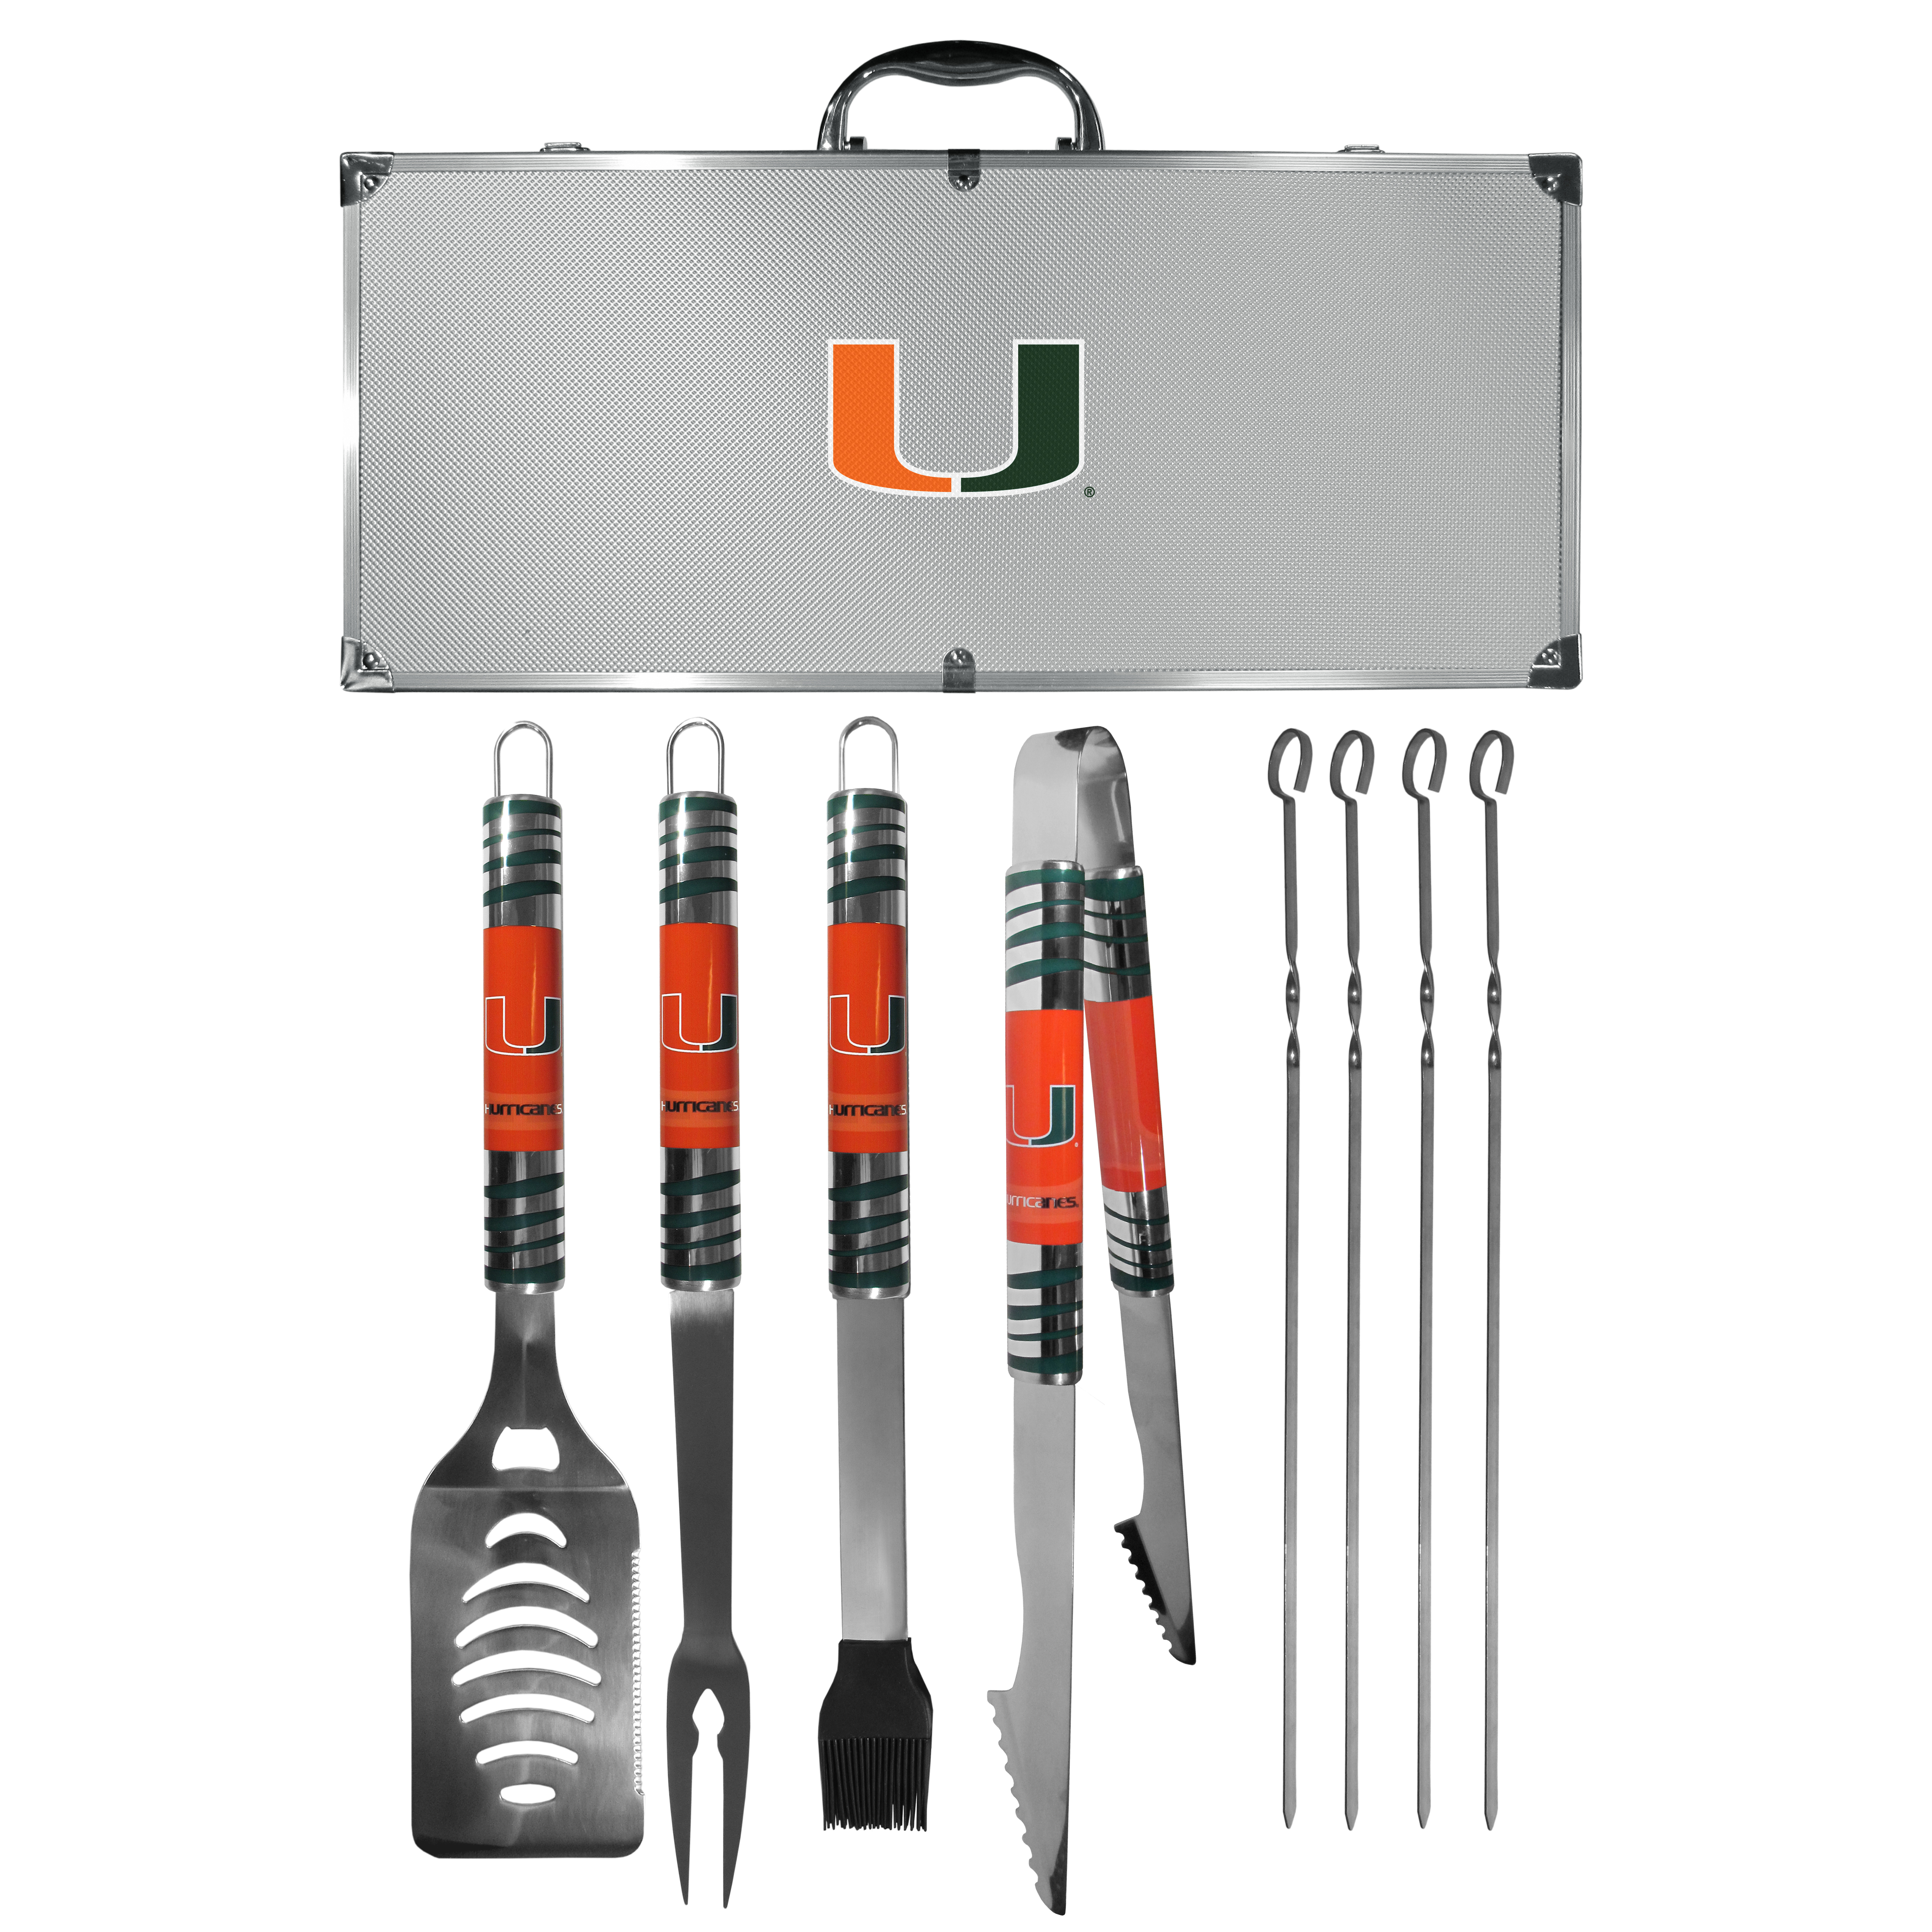 Miami Hurricanes 8 pc Tailgater BBQ Set - This is the ultimate Miami Hurricanes tailgate accessory! The high quality, 420 grade stainless steel tools are durable and well-made enough to make even the pickiest grill master smile. This complete grill accessory kit includes; 4 skewers, spatula with bottle opener and serrated knife edge, basting brush, tongs and a fork. The 18 inch metal carrying case is perfect for great outdoor use making grilling an ease while camping, tailgating or while having a game day party on your patio. The tools are 17 inches long and feature vivid team graphics. The metal case features a large team emblem with exceptional detail. This high-end men's gift is sure to be a hit as a present on Father's Day or Christmas.